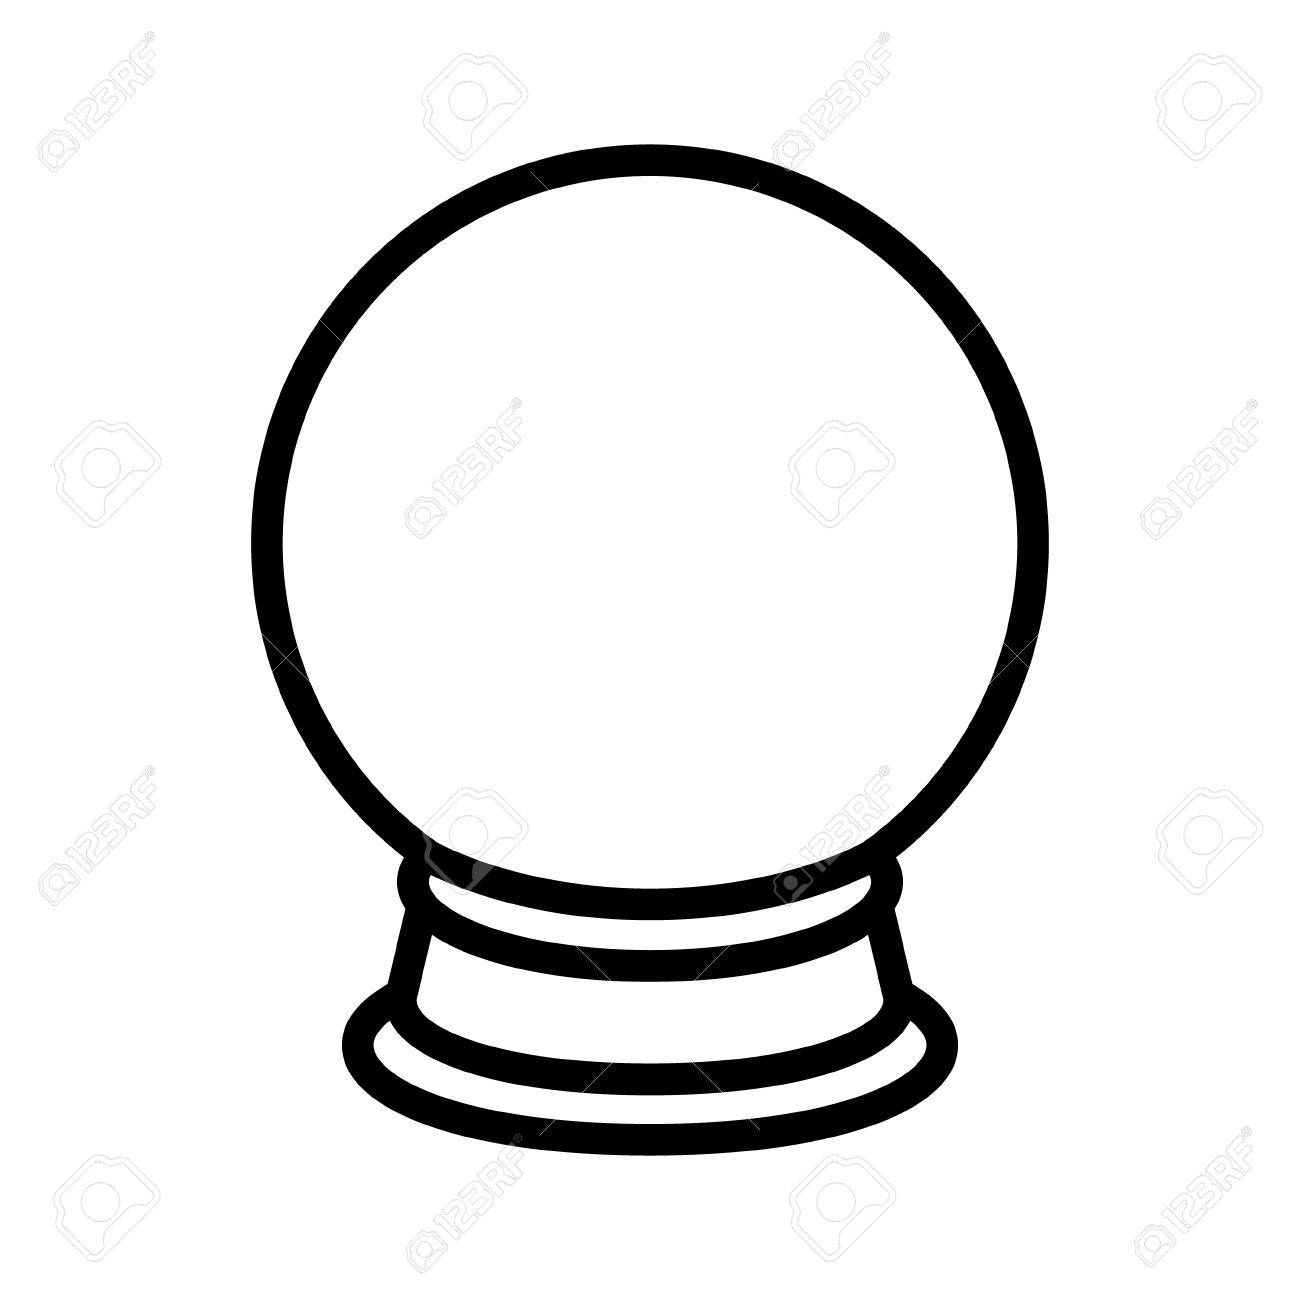 crystal ball of fortune telling line art icon for apps and websites rh 123rf com free clipart crystal ball free crystal ball images clip art